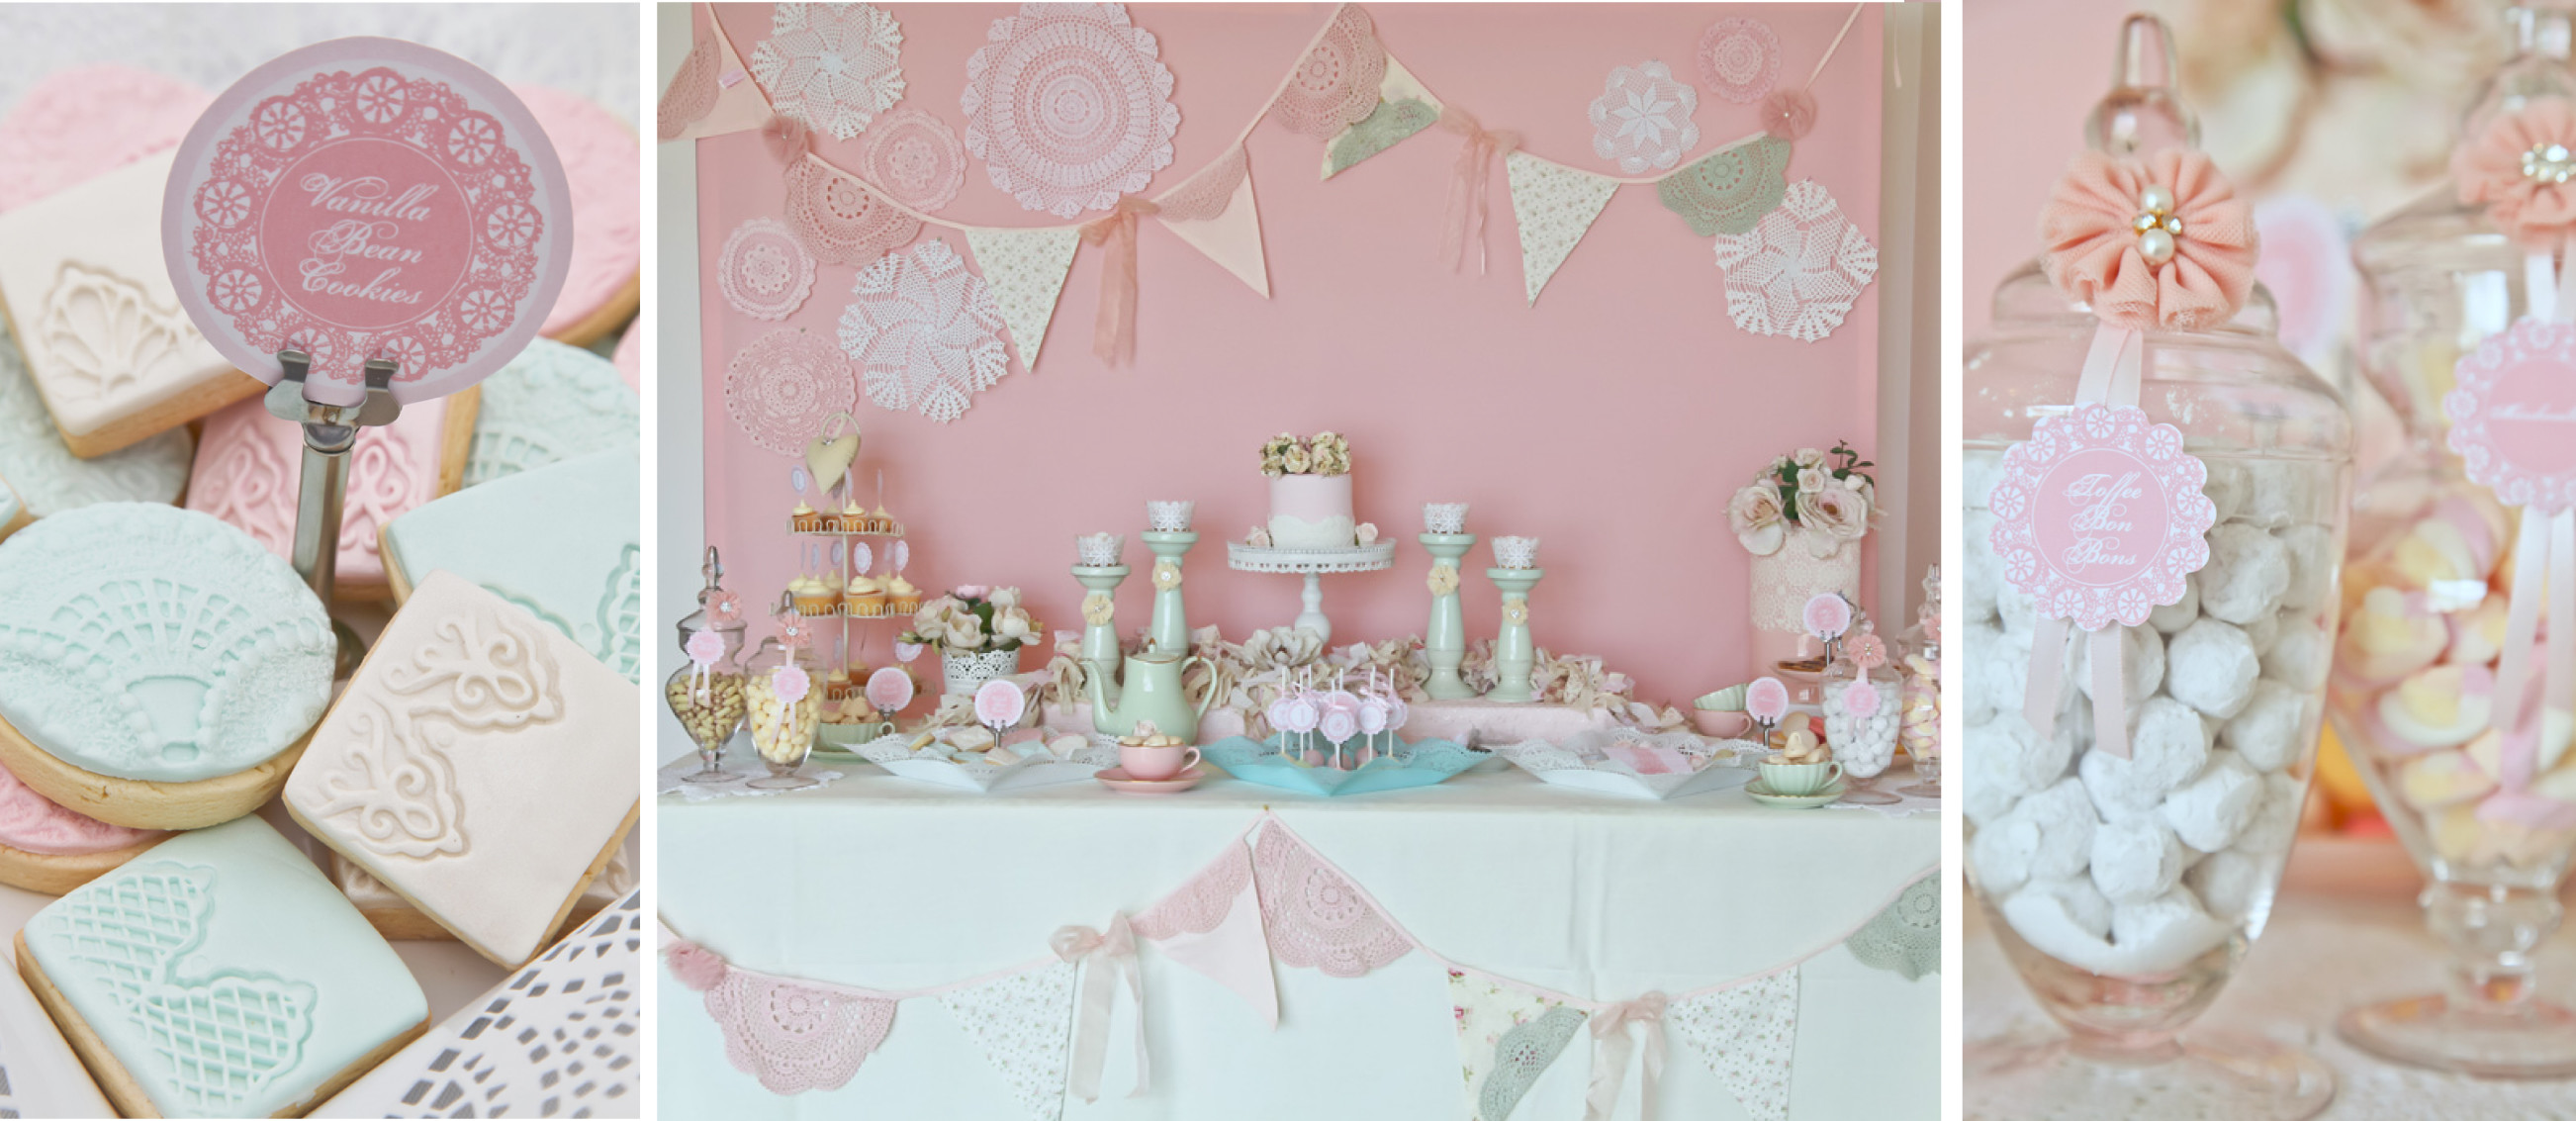 Res: 2604x1133, Collection of 17+ Retro Birthday Party Wallpaper